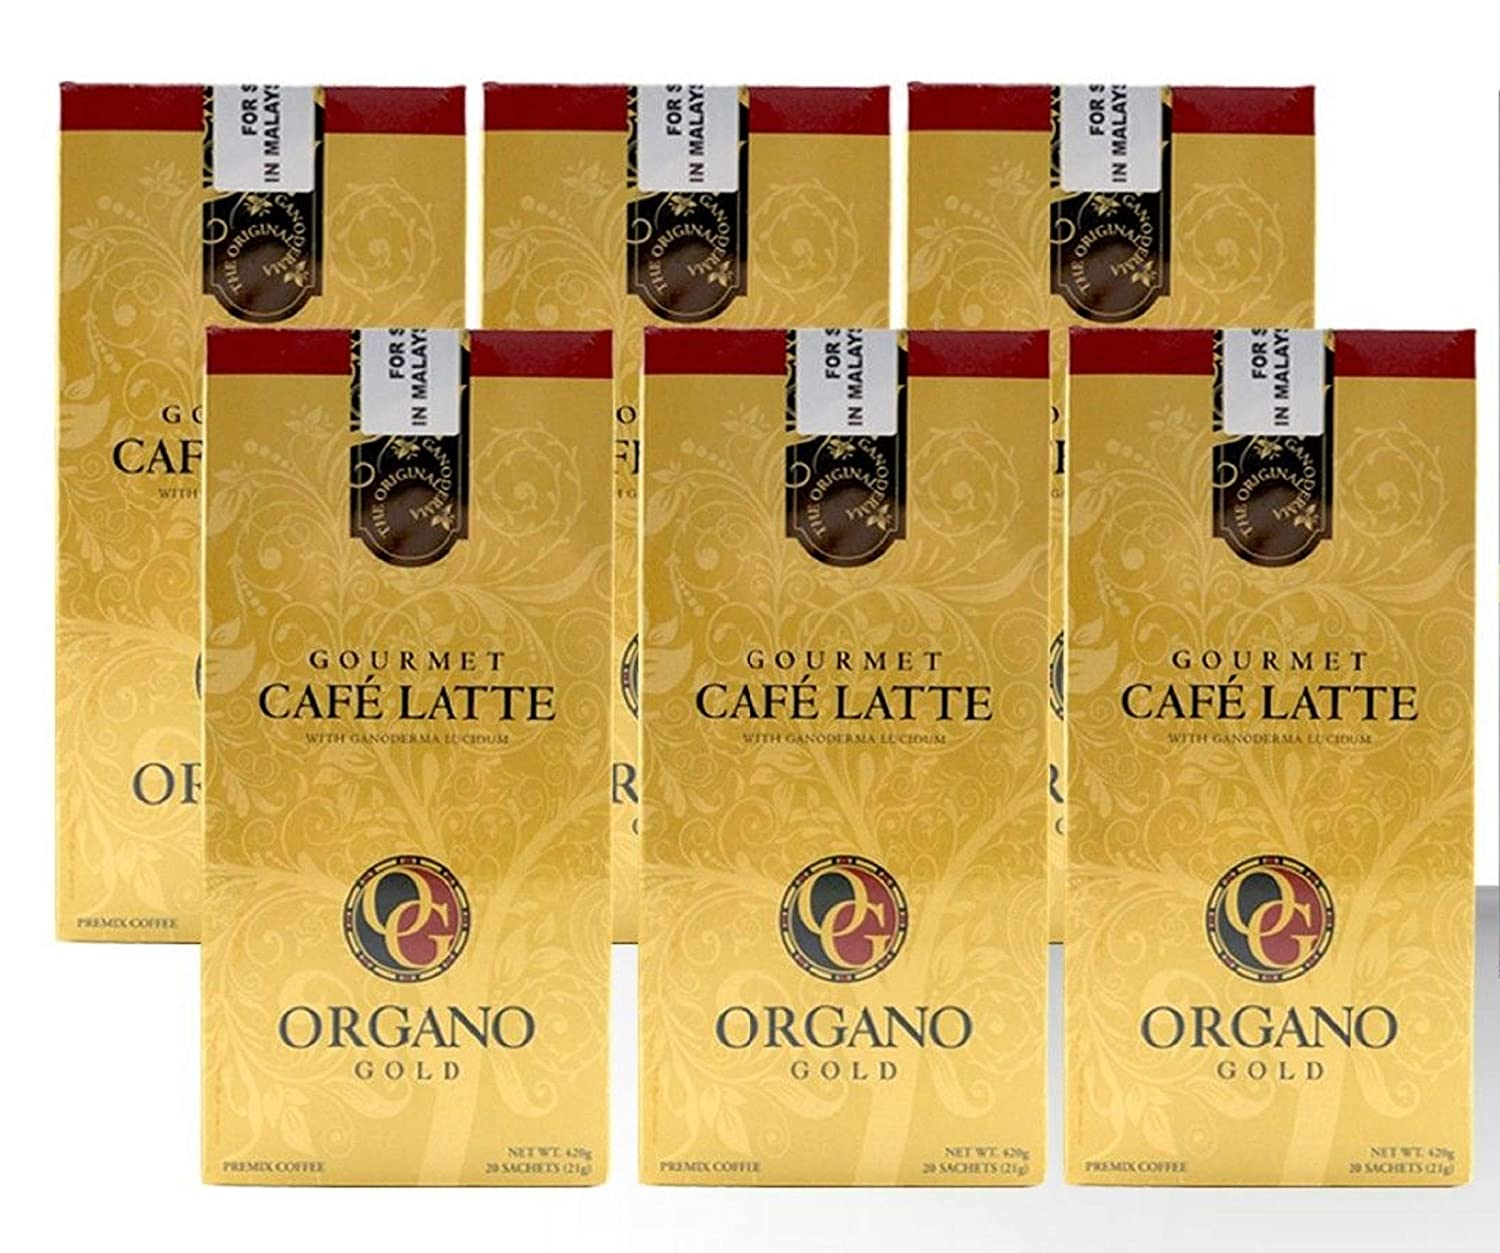 6 Box 100% Certified Organic Organic Ganoderma Gourmet Organo Gold Cafe Latte Offer Free Express 81FzpJT4m9L._SL1500_